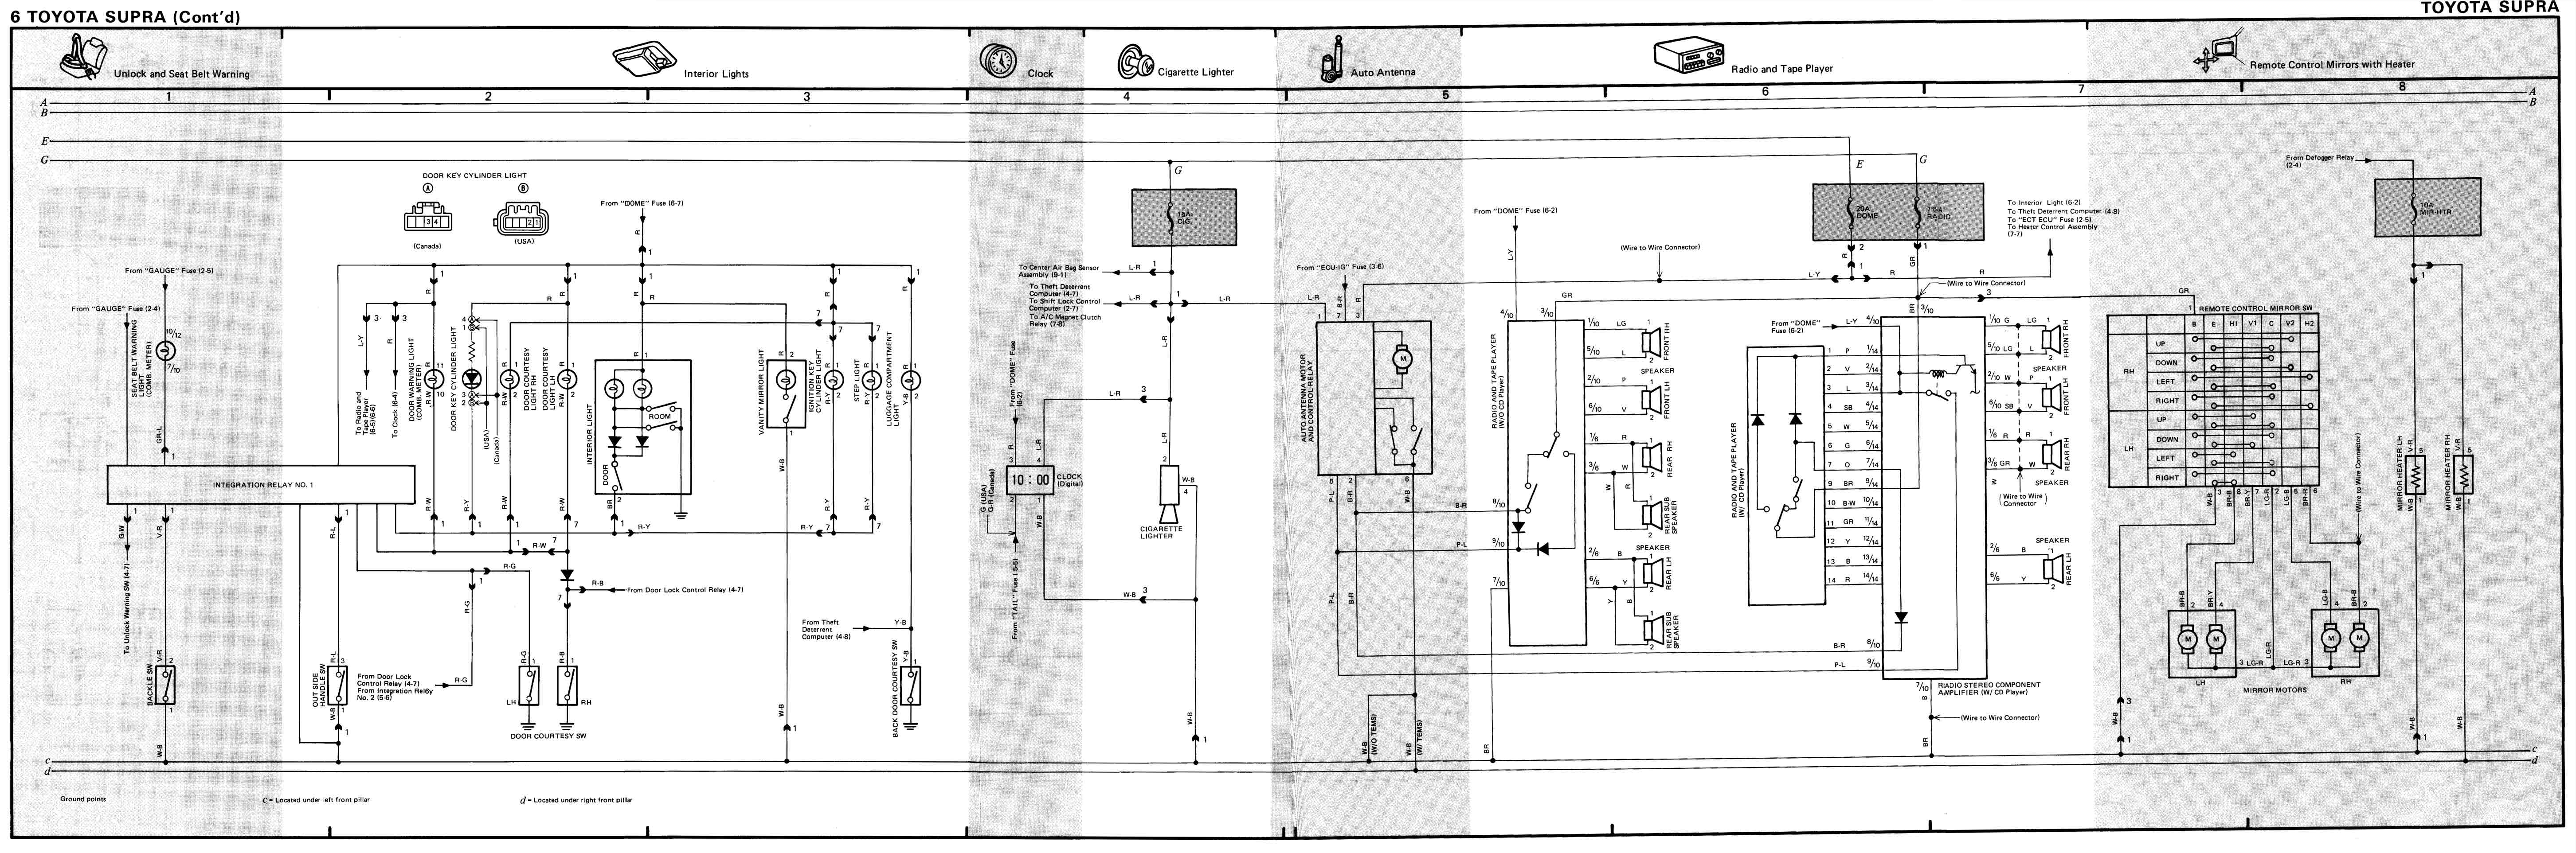 1987 toyota supra wiring diagram wiring diagram third level1987 toyota supra wiring diagram